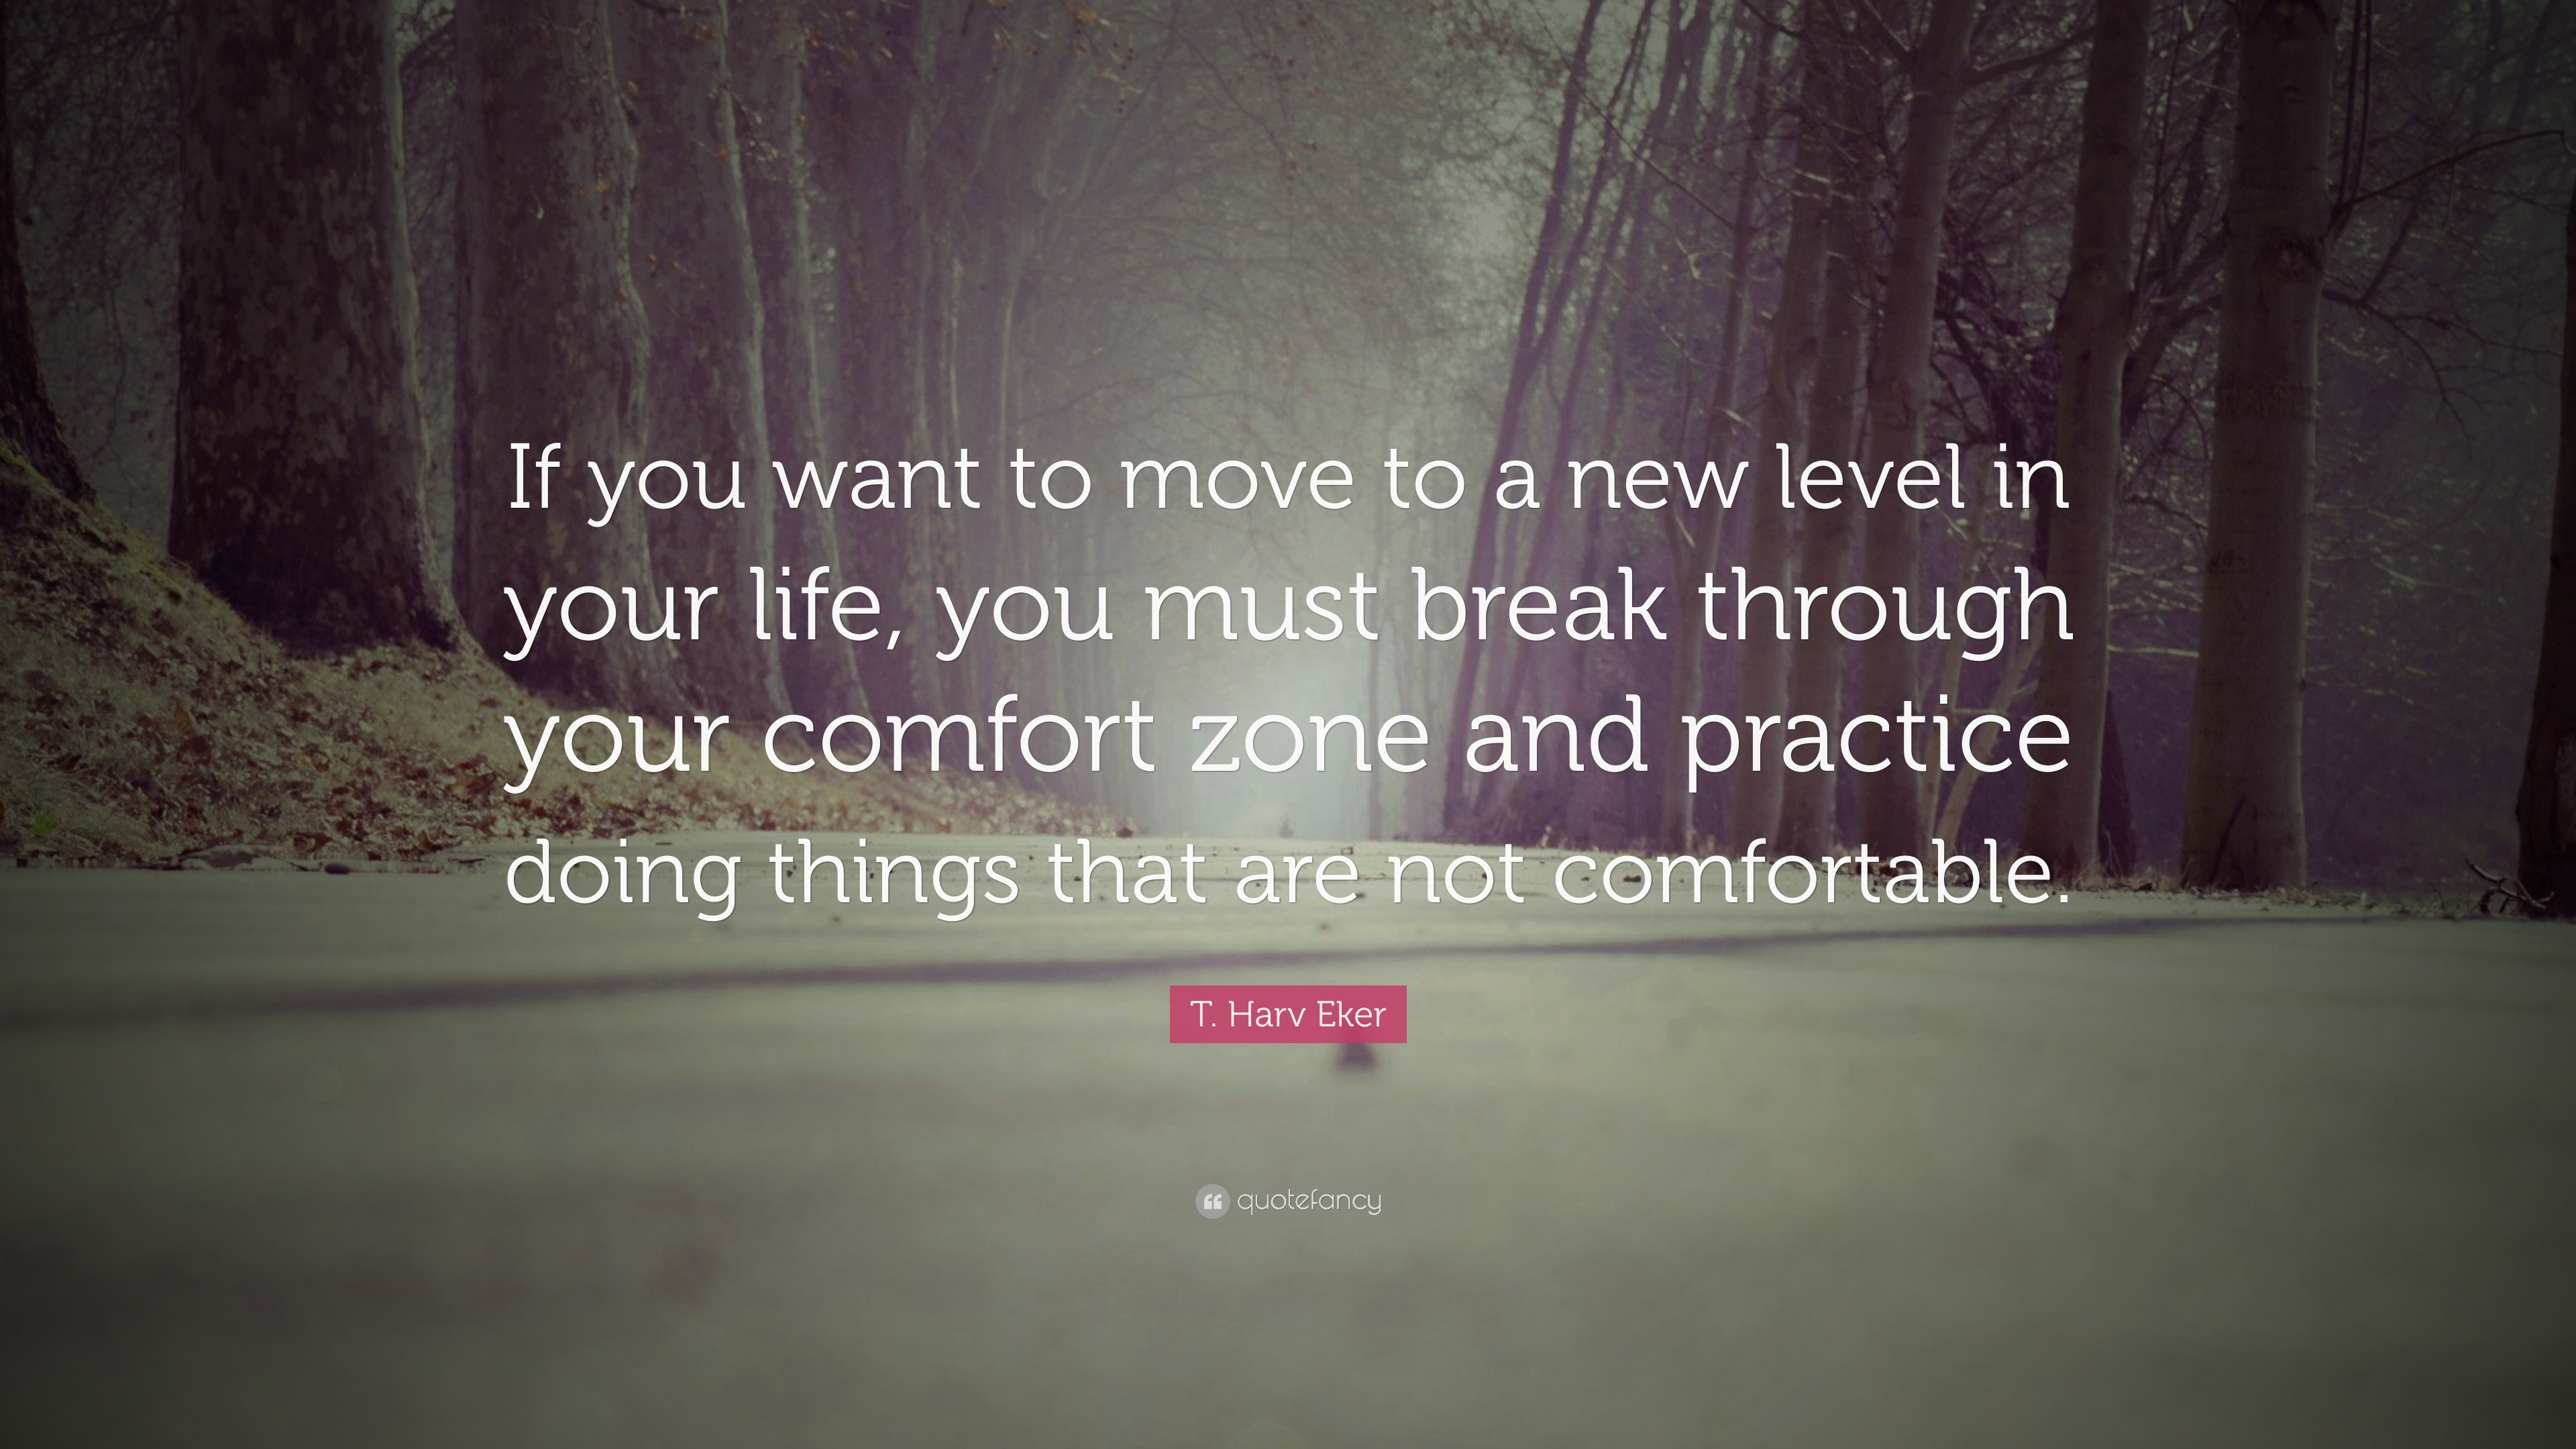 T Harv Eker Quote If You Want To Move To A New Level In Your Life